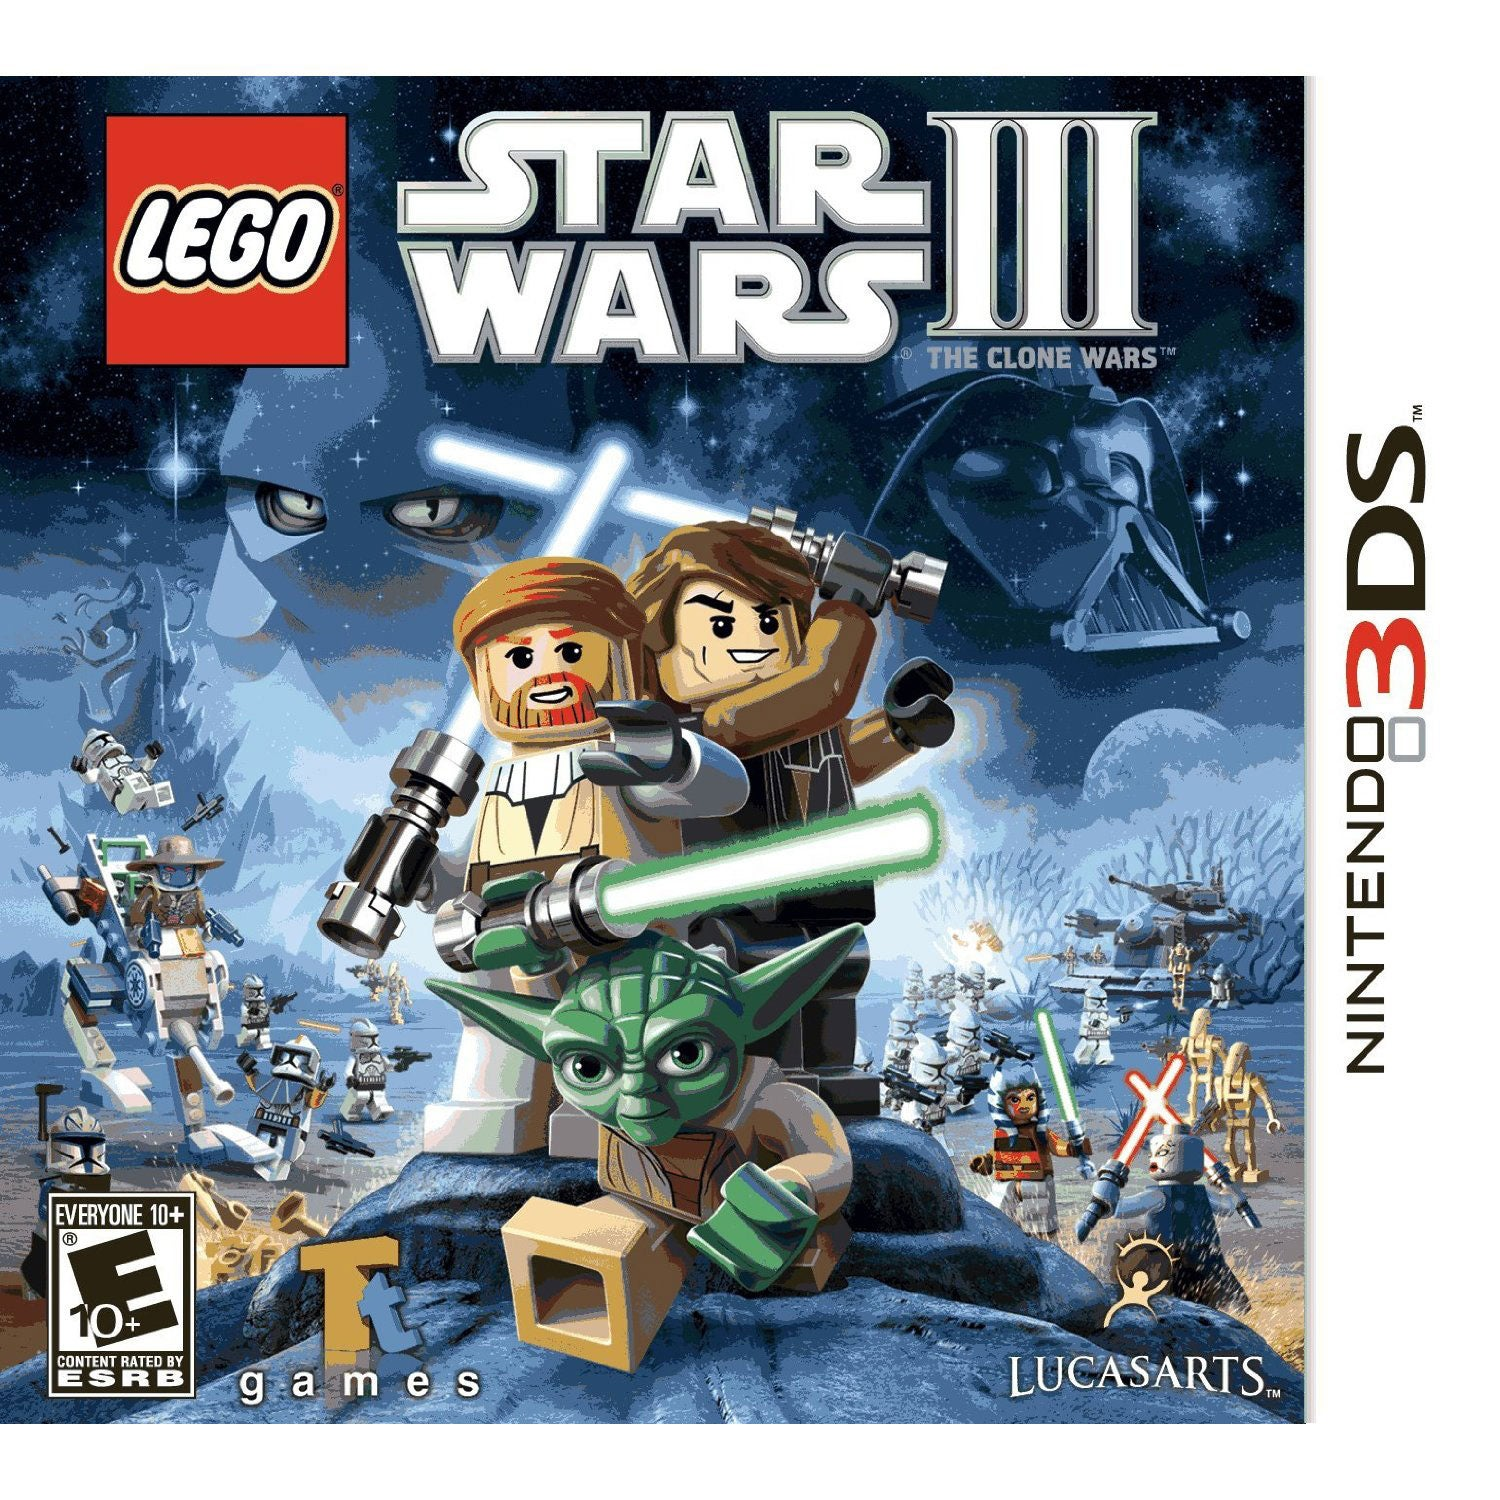 Nintendo 3DS - LEGO Star Wars III: The Clone Wars